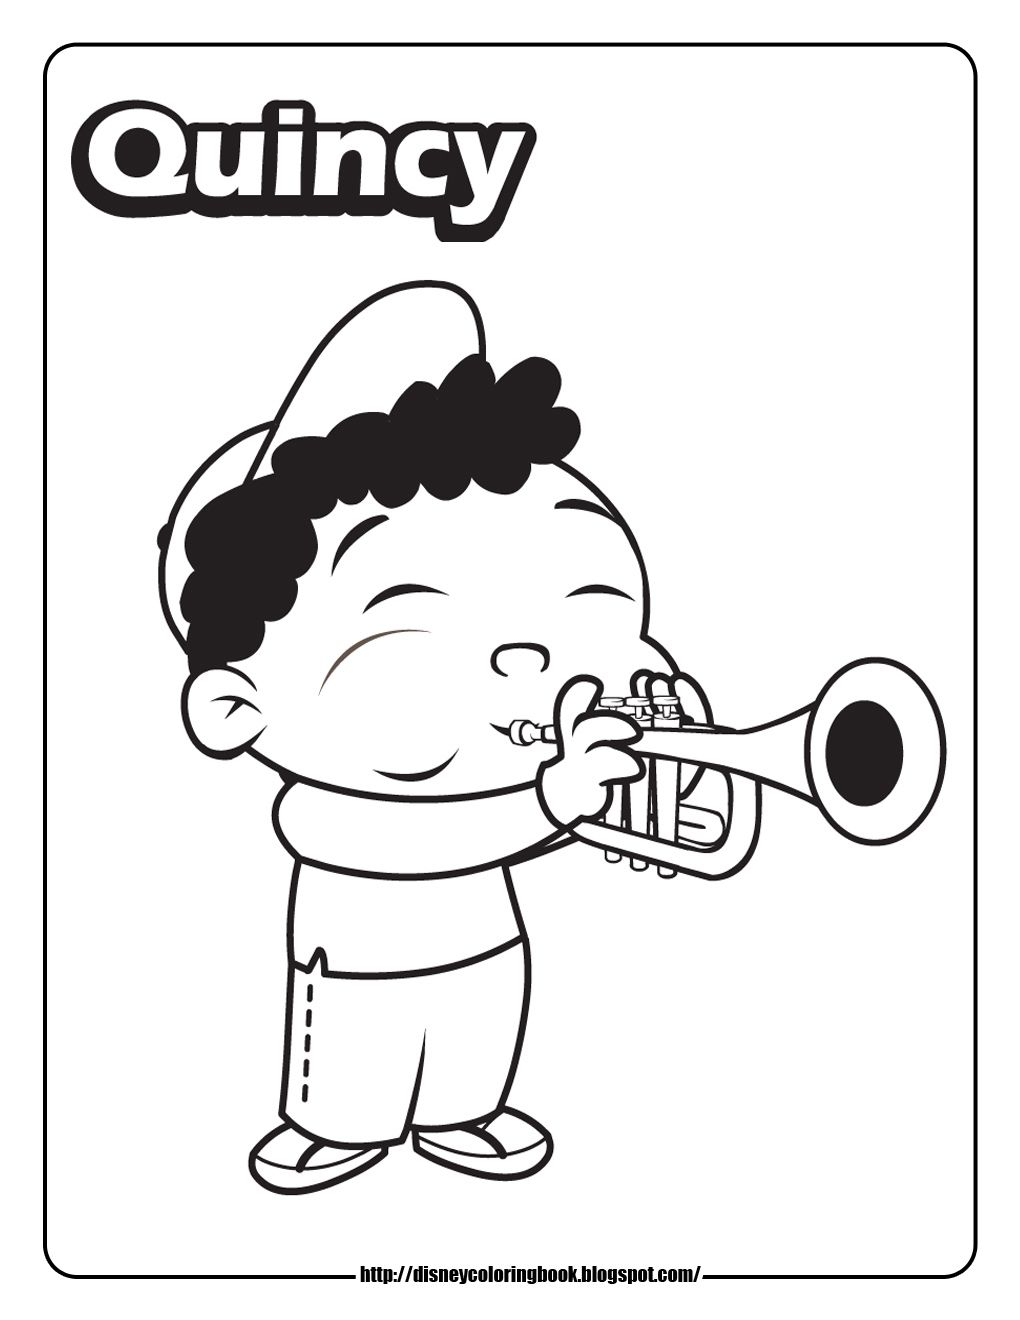 little einsteins quincy coloring page sydney birthday ideas